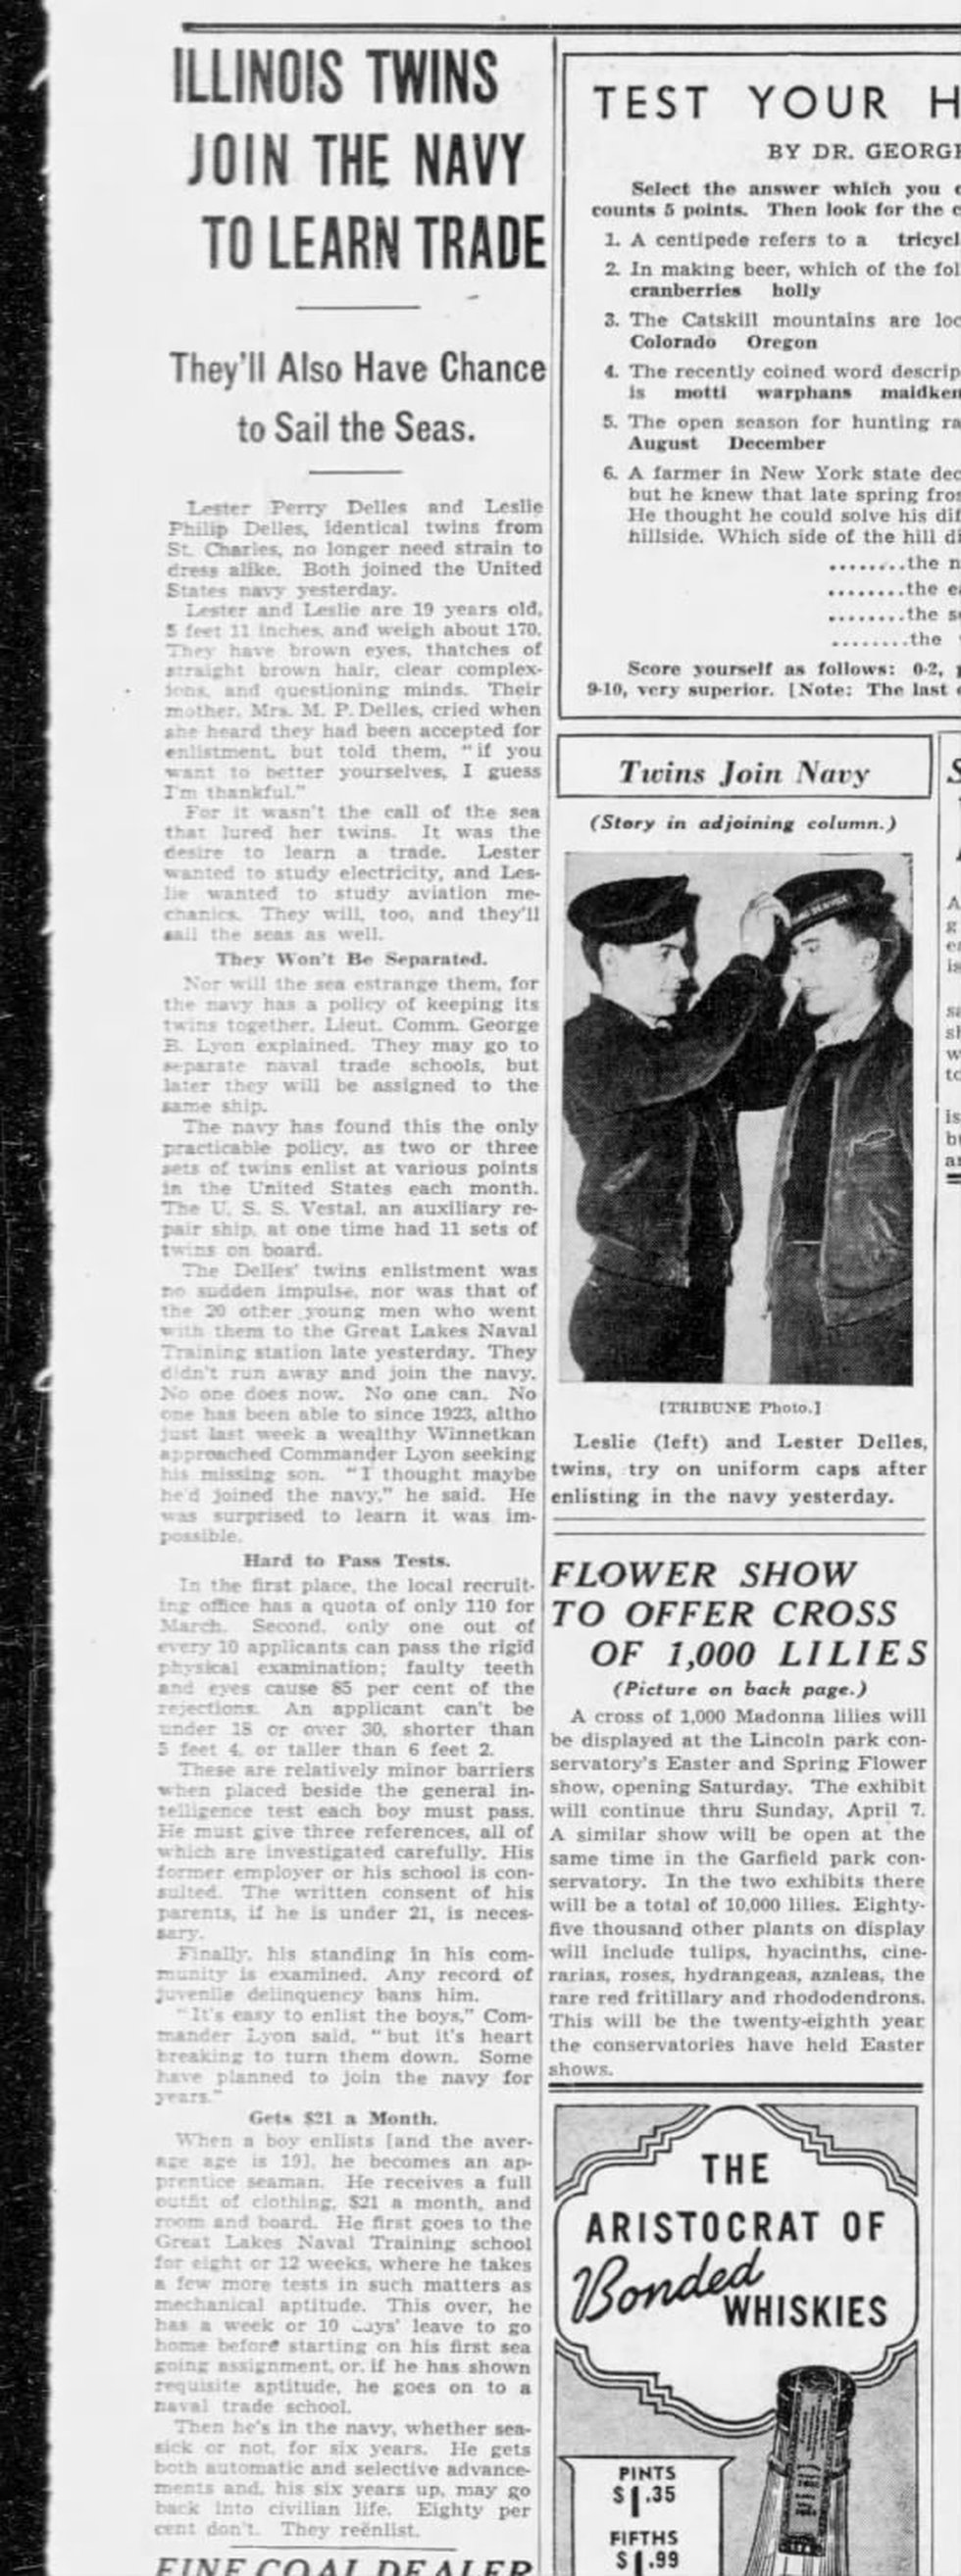 Navy Electrician's Mate 3rd Class Leslie P. Delles, 21, of St. Charles, Illinois.